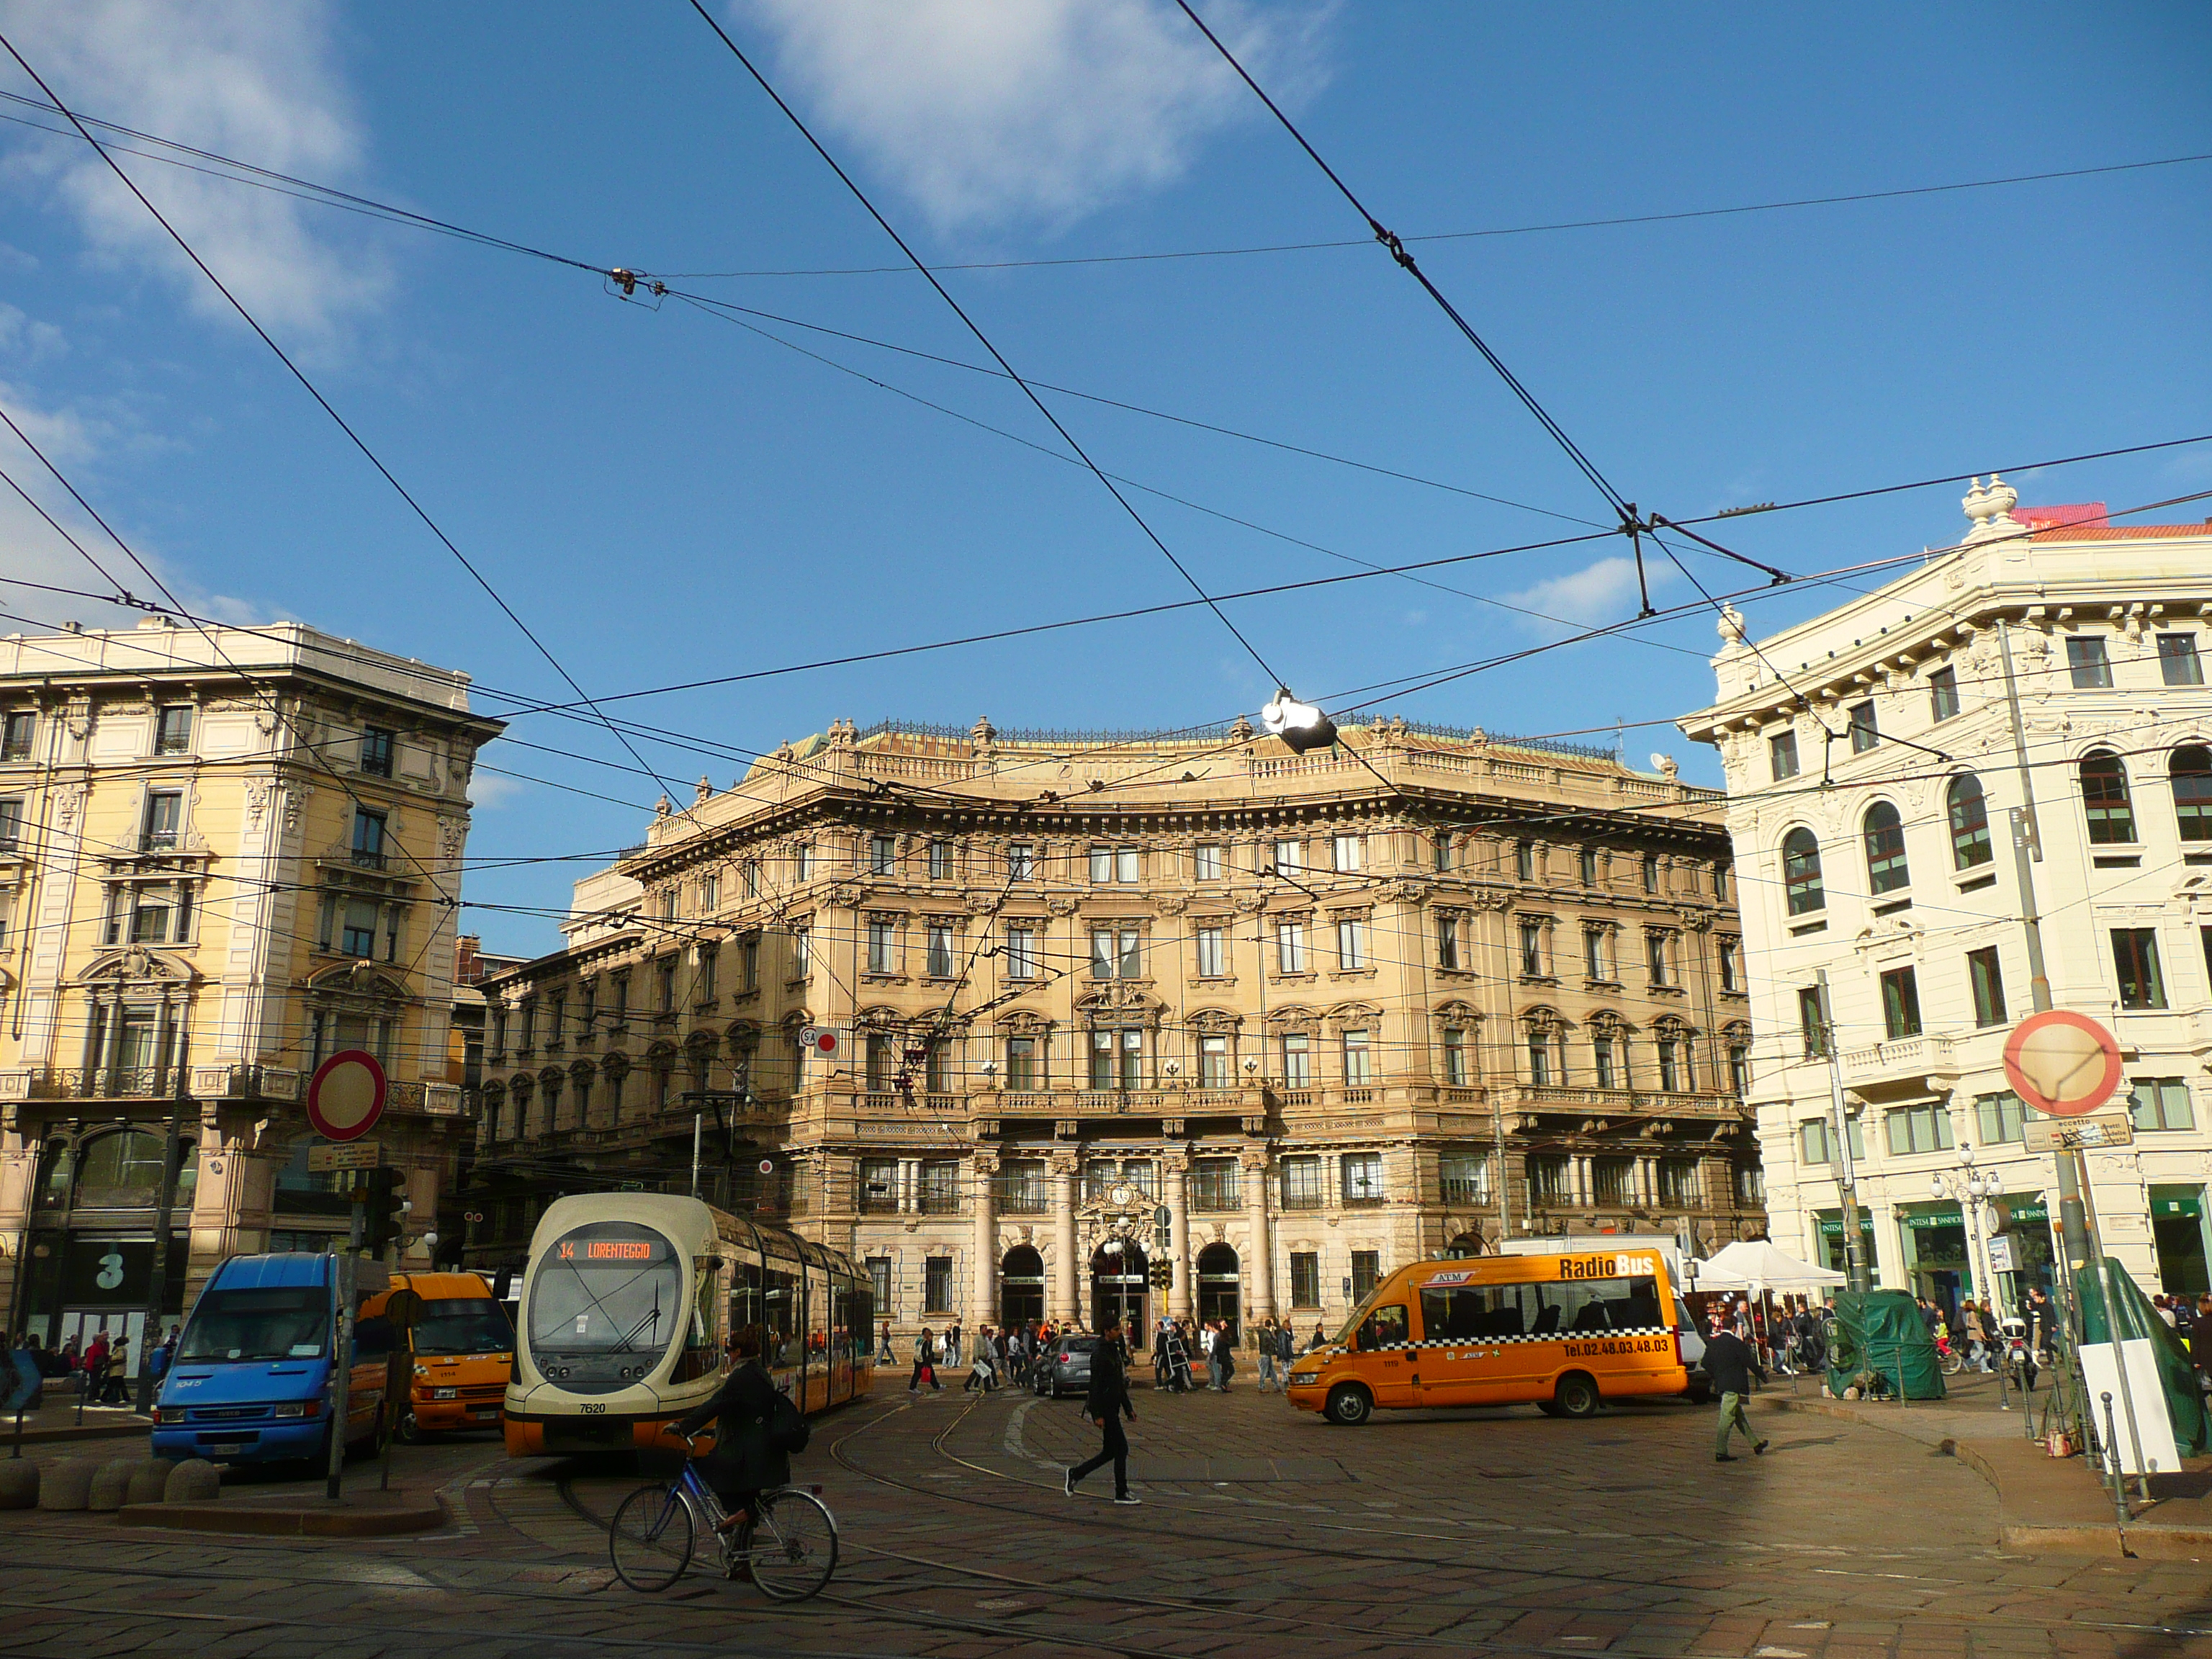 File:Wires - panoramio - paolo dagani.jpg - Wikimedia Commons